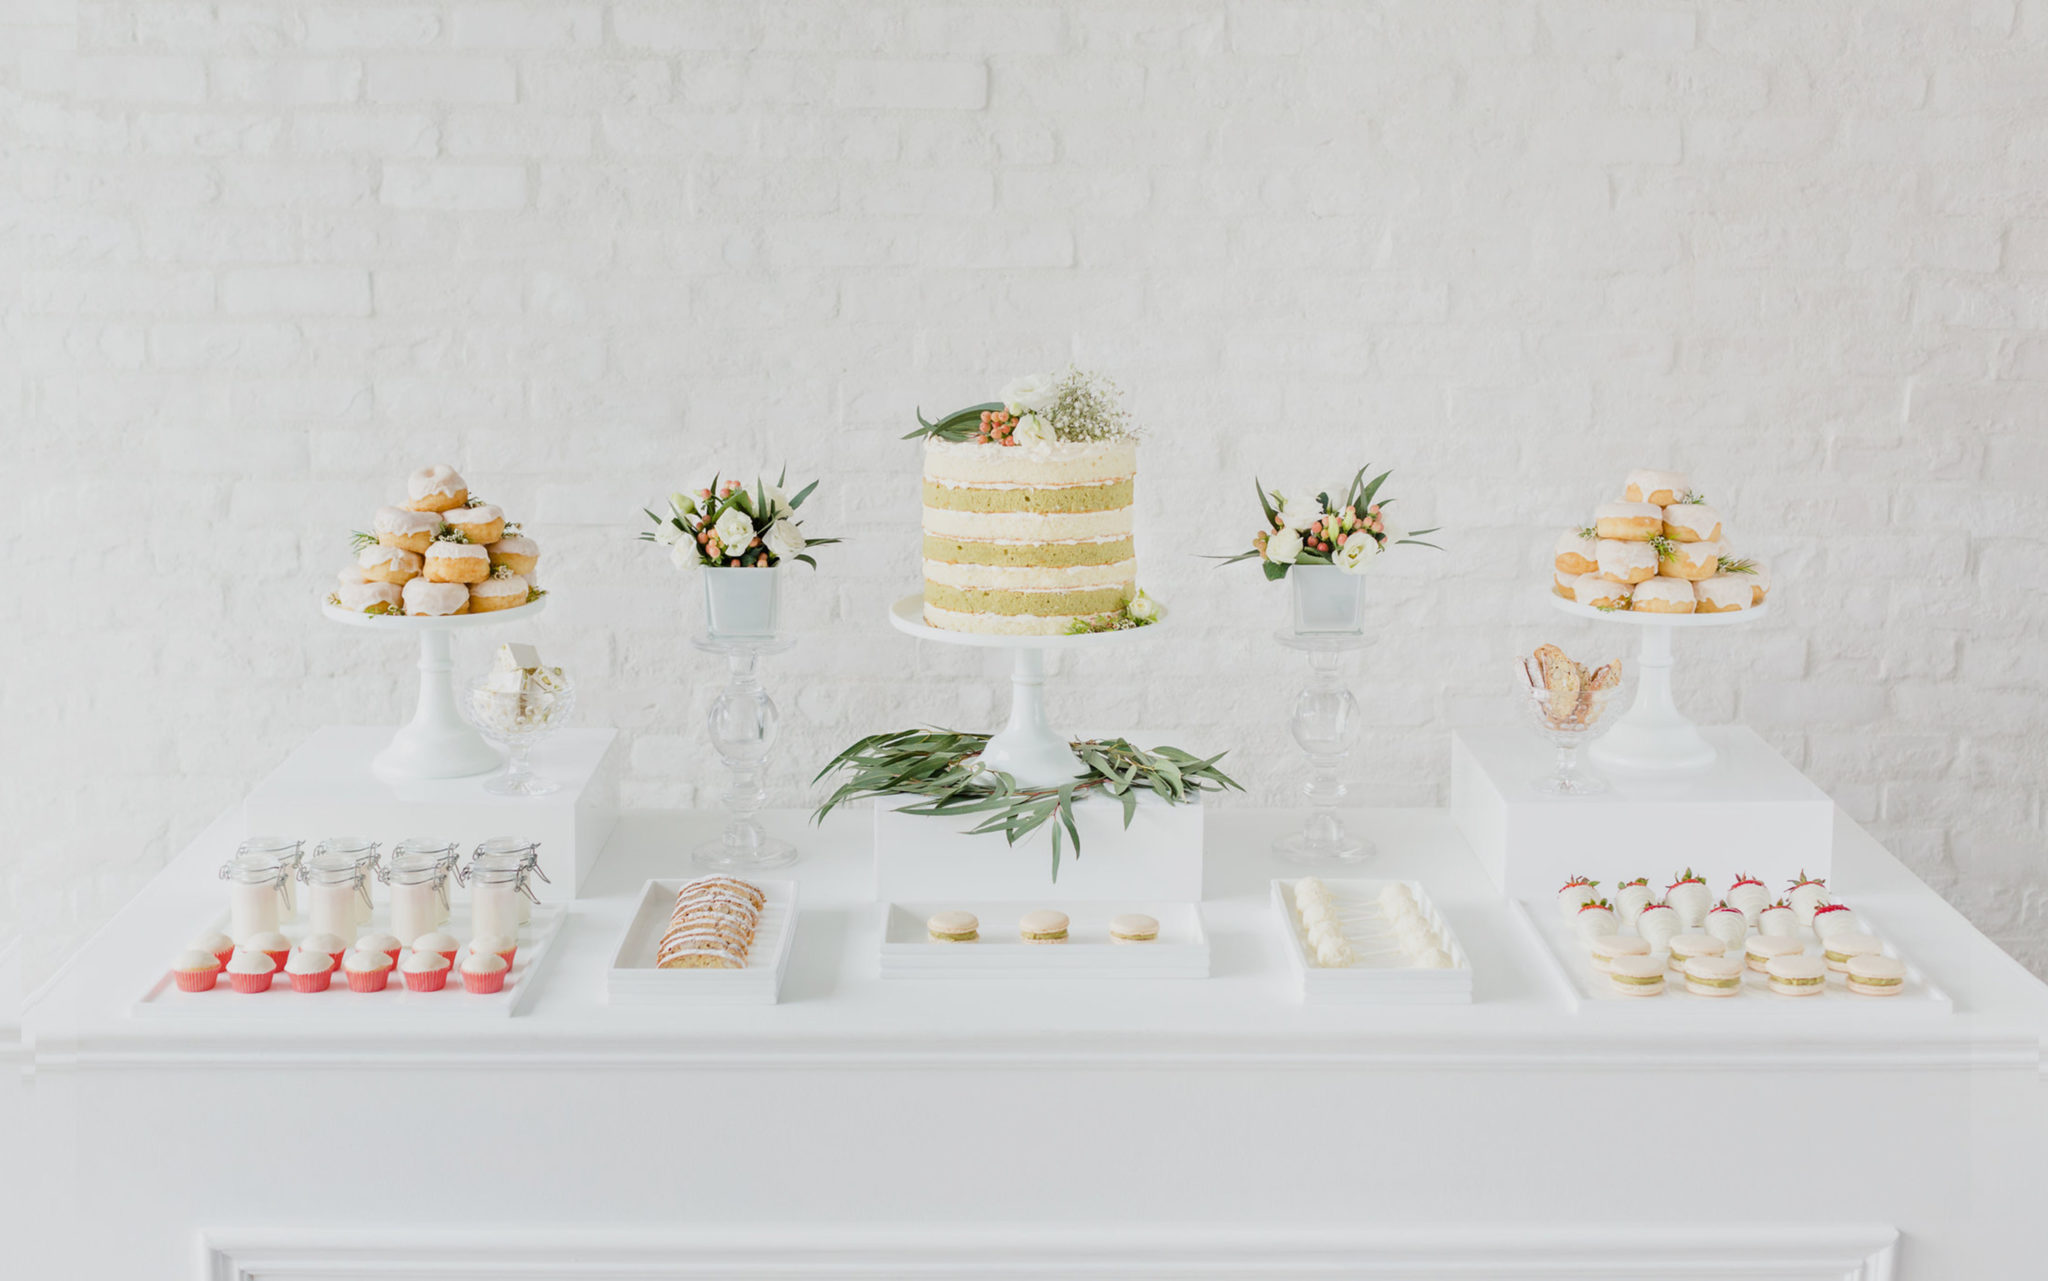 A table with desserts from an event catered by Ristorante Beatrice.